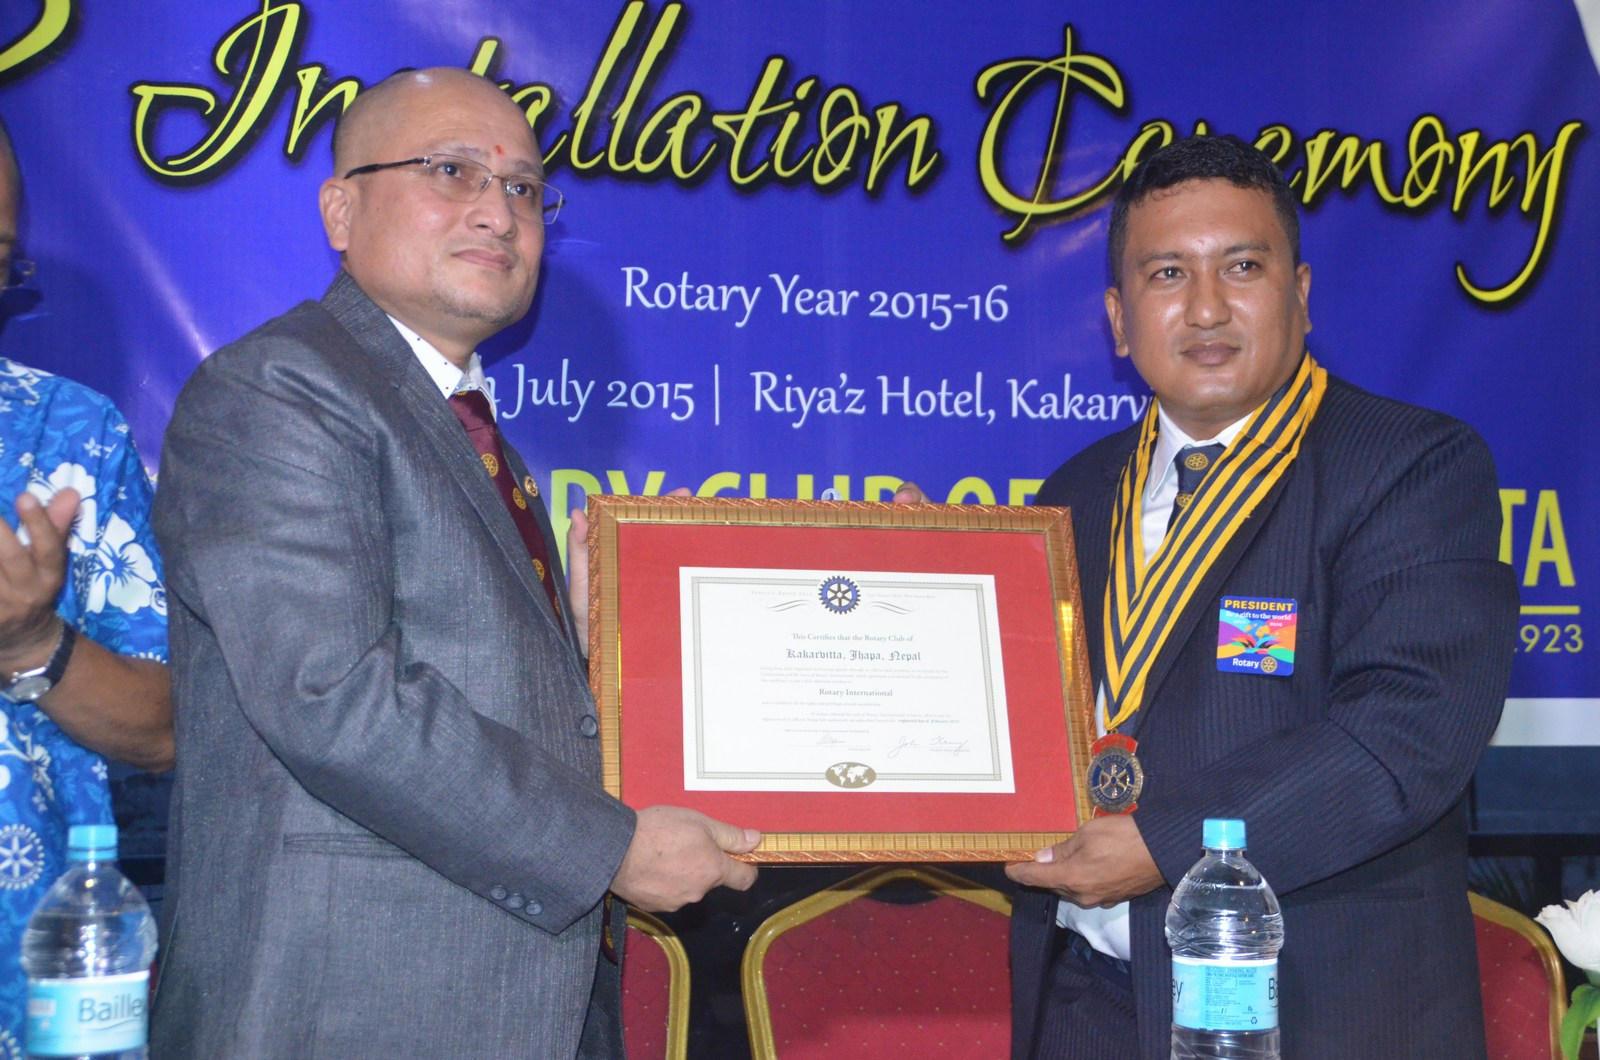 6th Installation Ceremony 2015 16 Rotary Club Of Kakarvitta 28